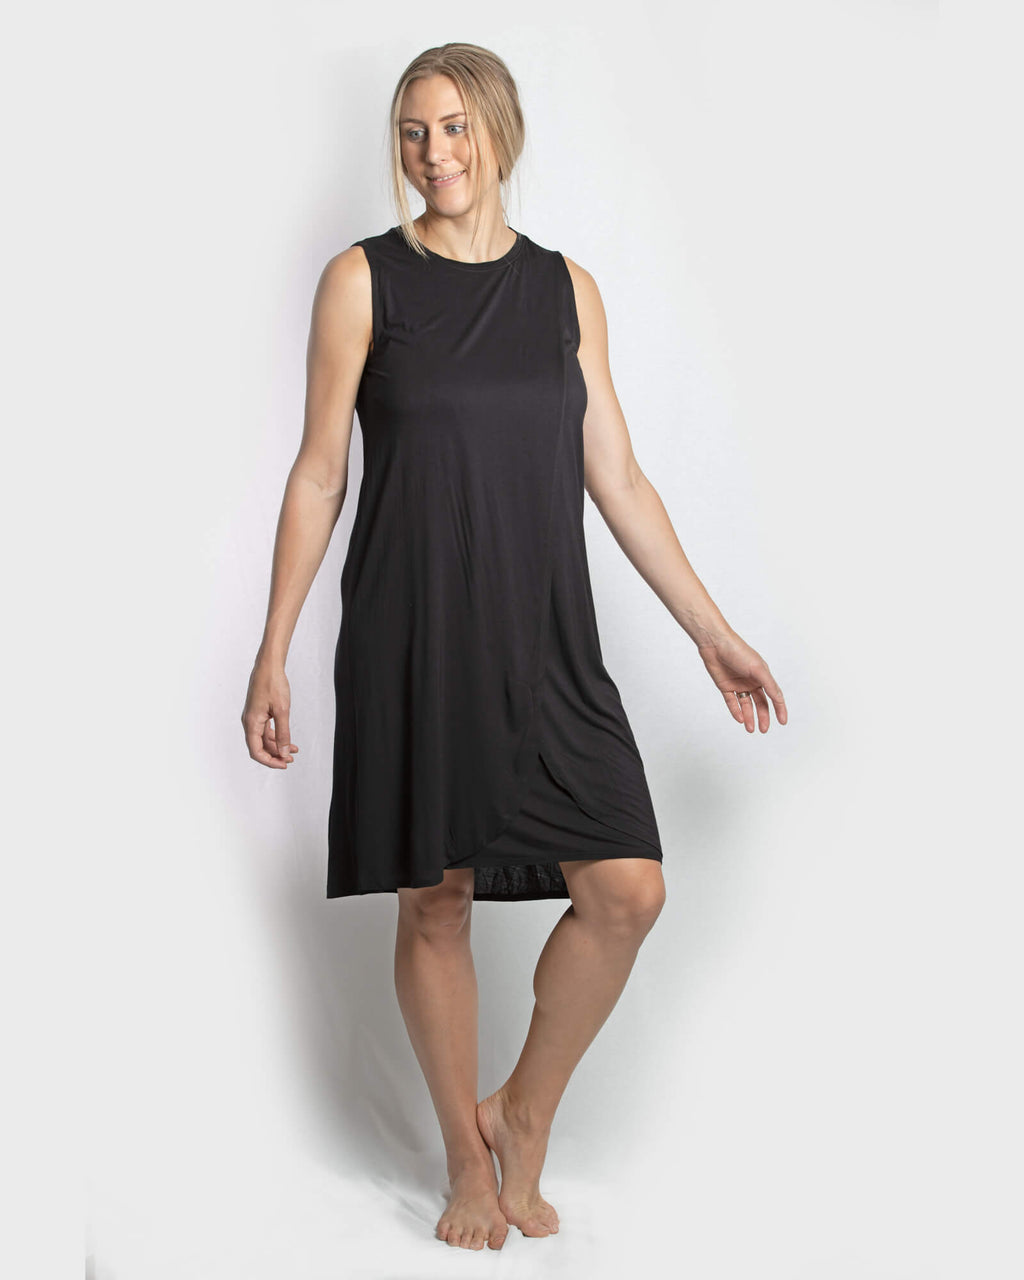 JUST ARRIVED!! - Jessica Cross Over dress - Black